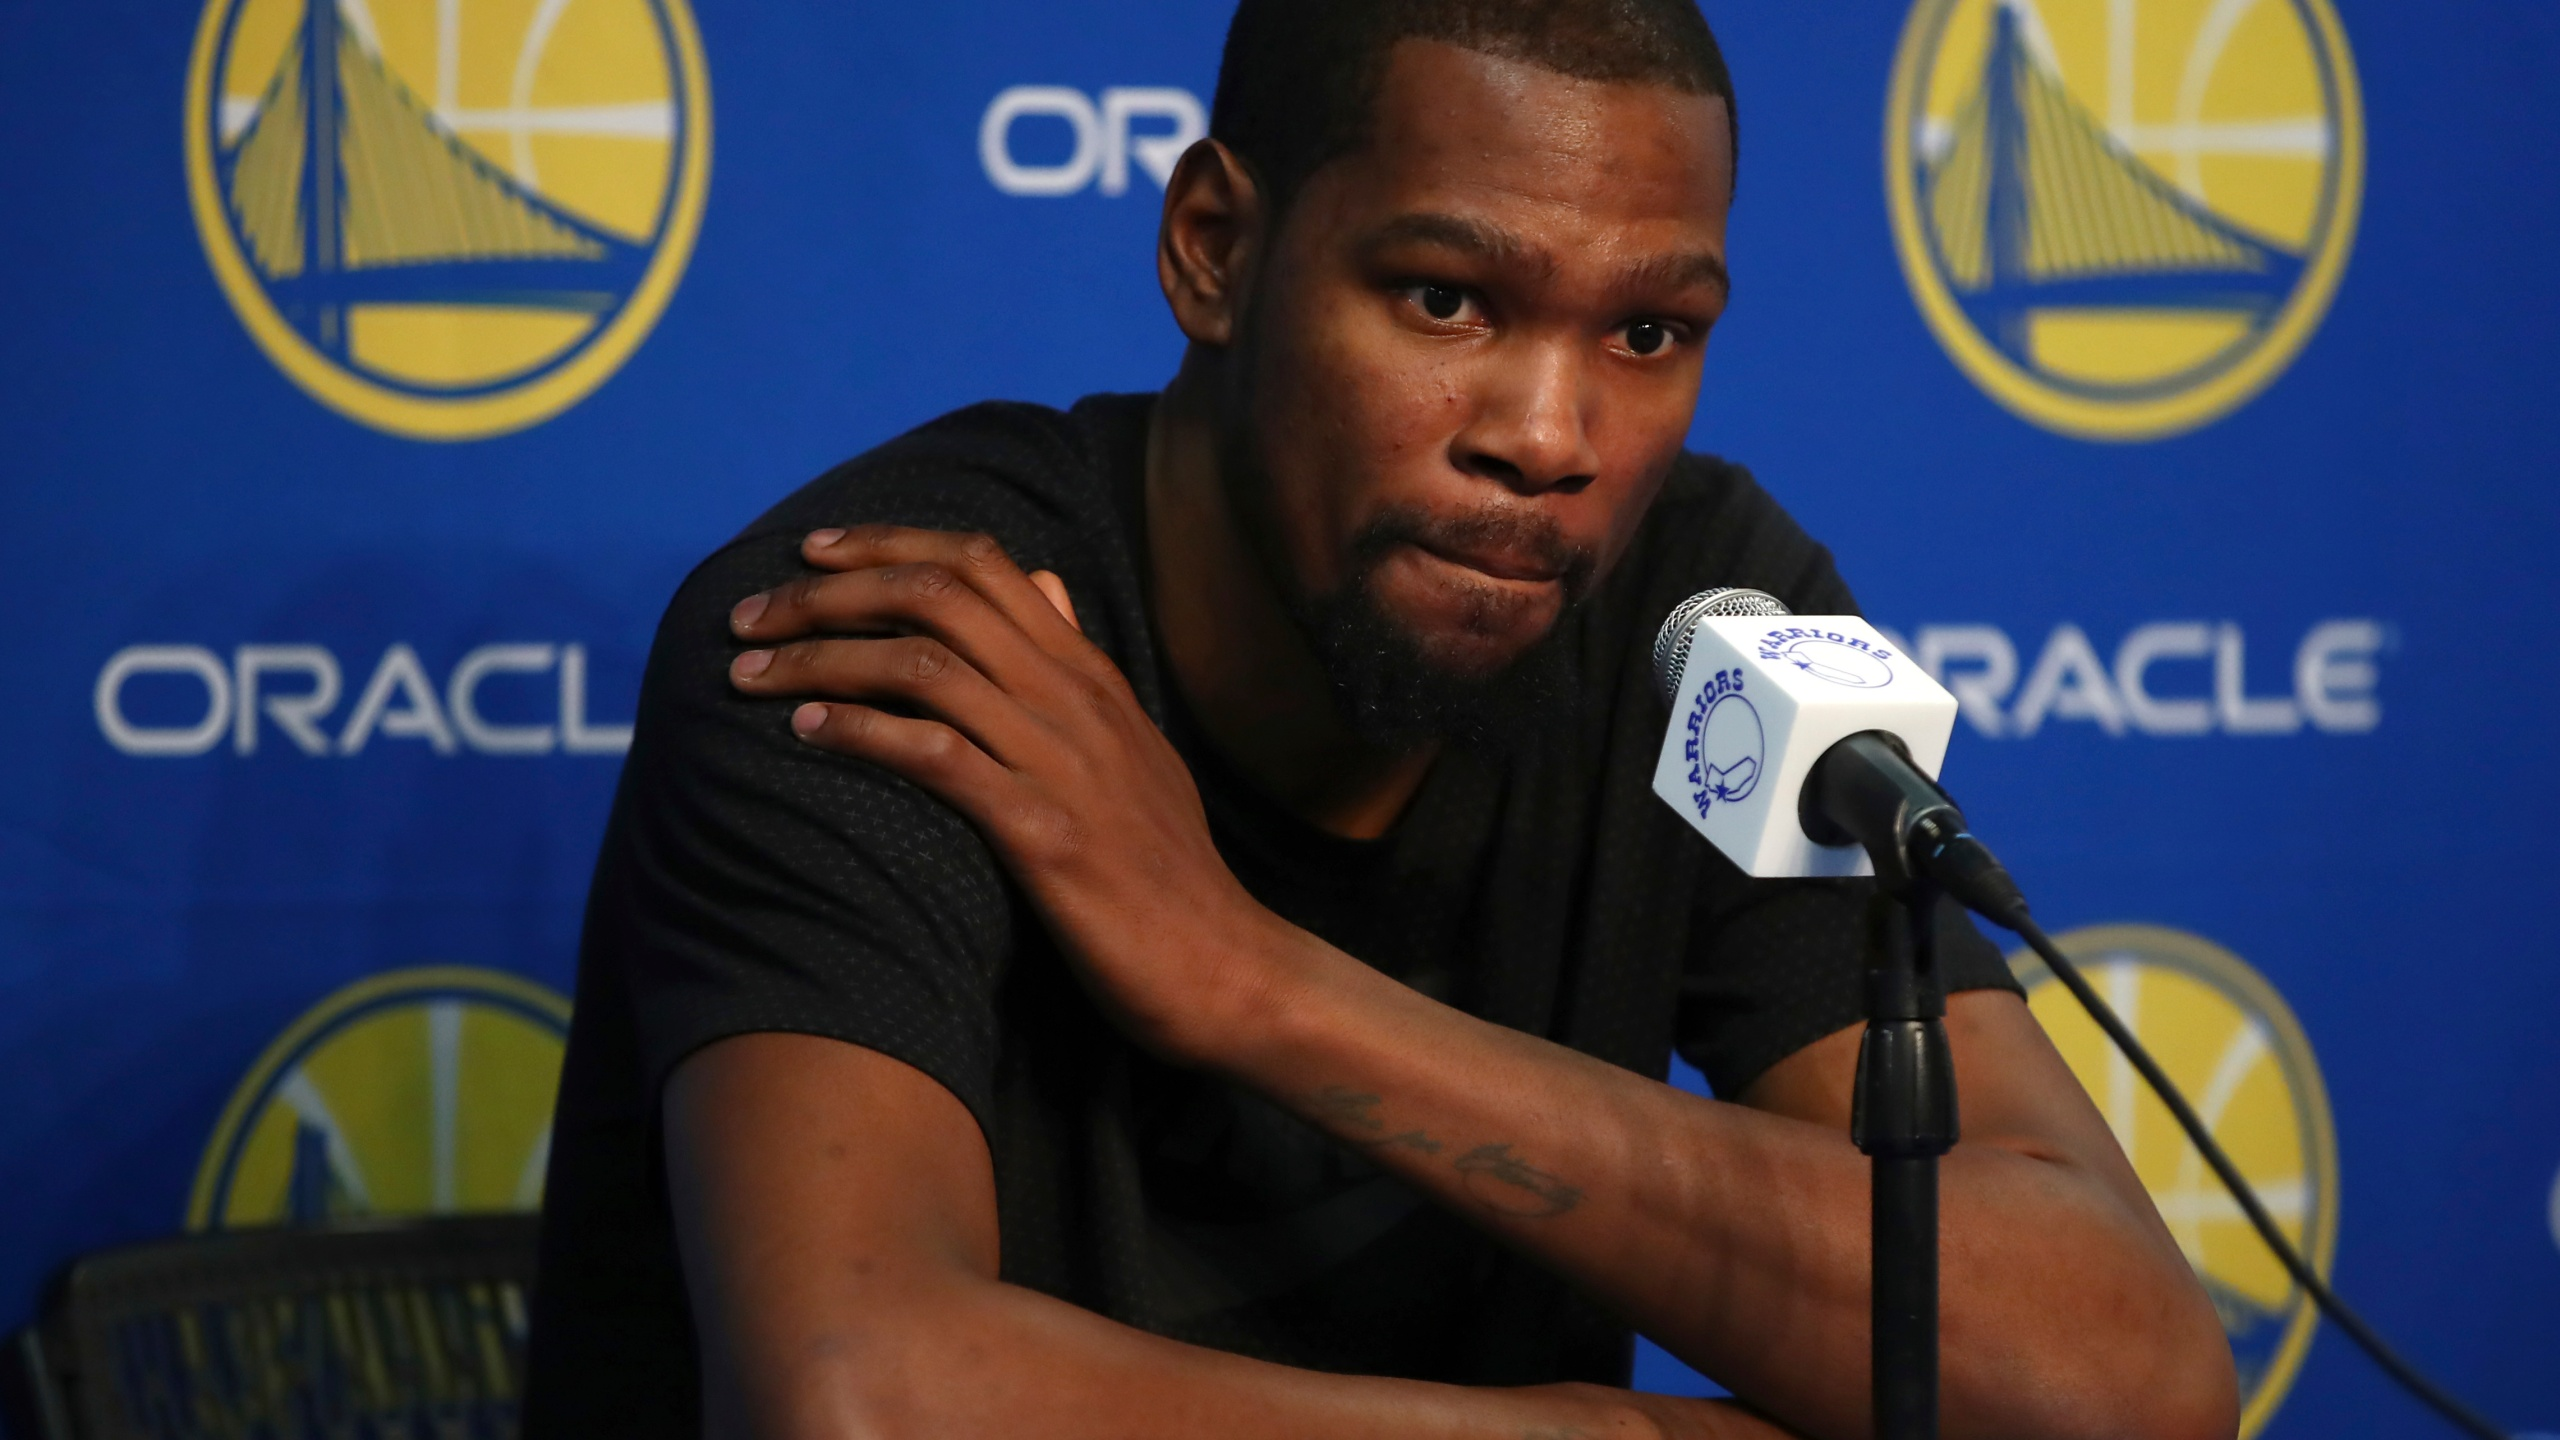 Warriors_Durant_Hurt_Basketball_60133-159532.jpg69262313